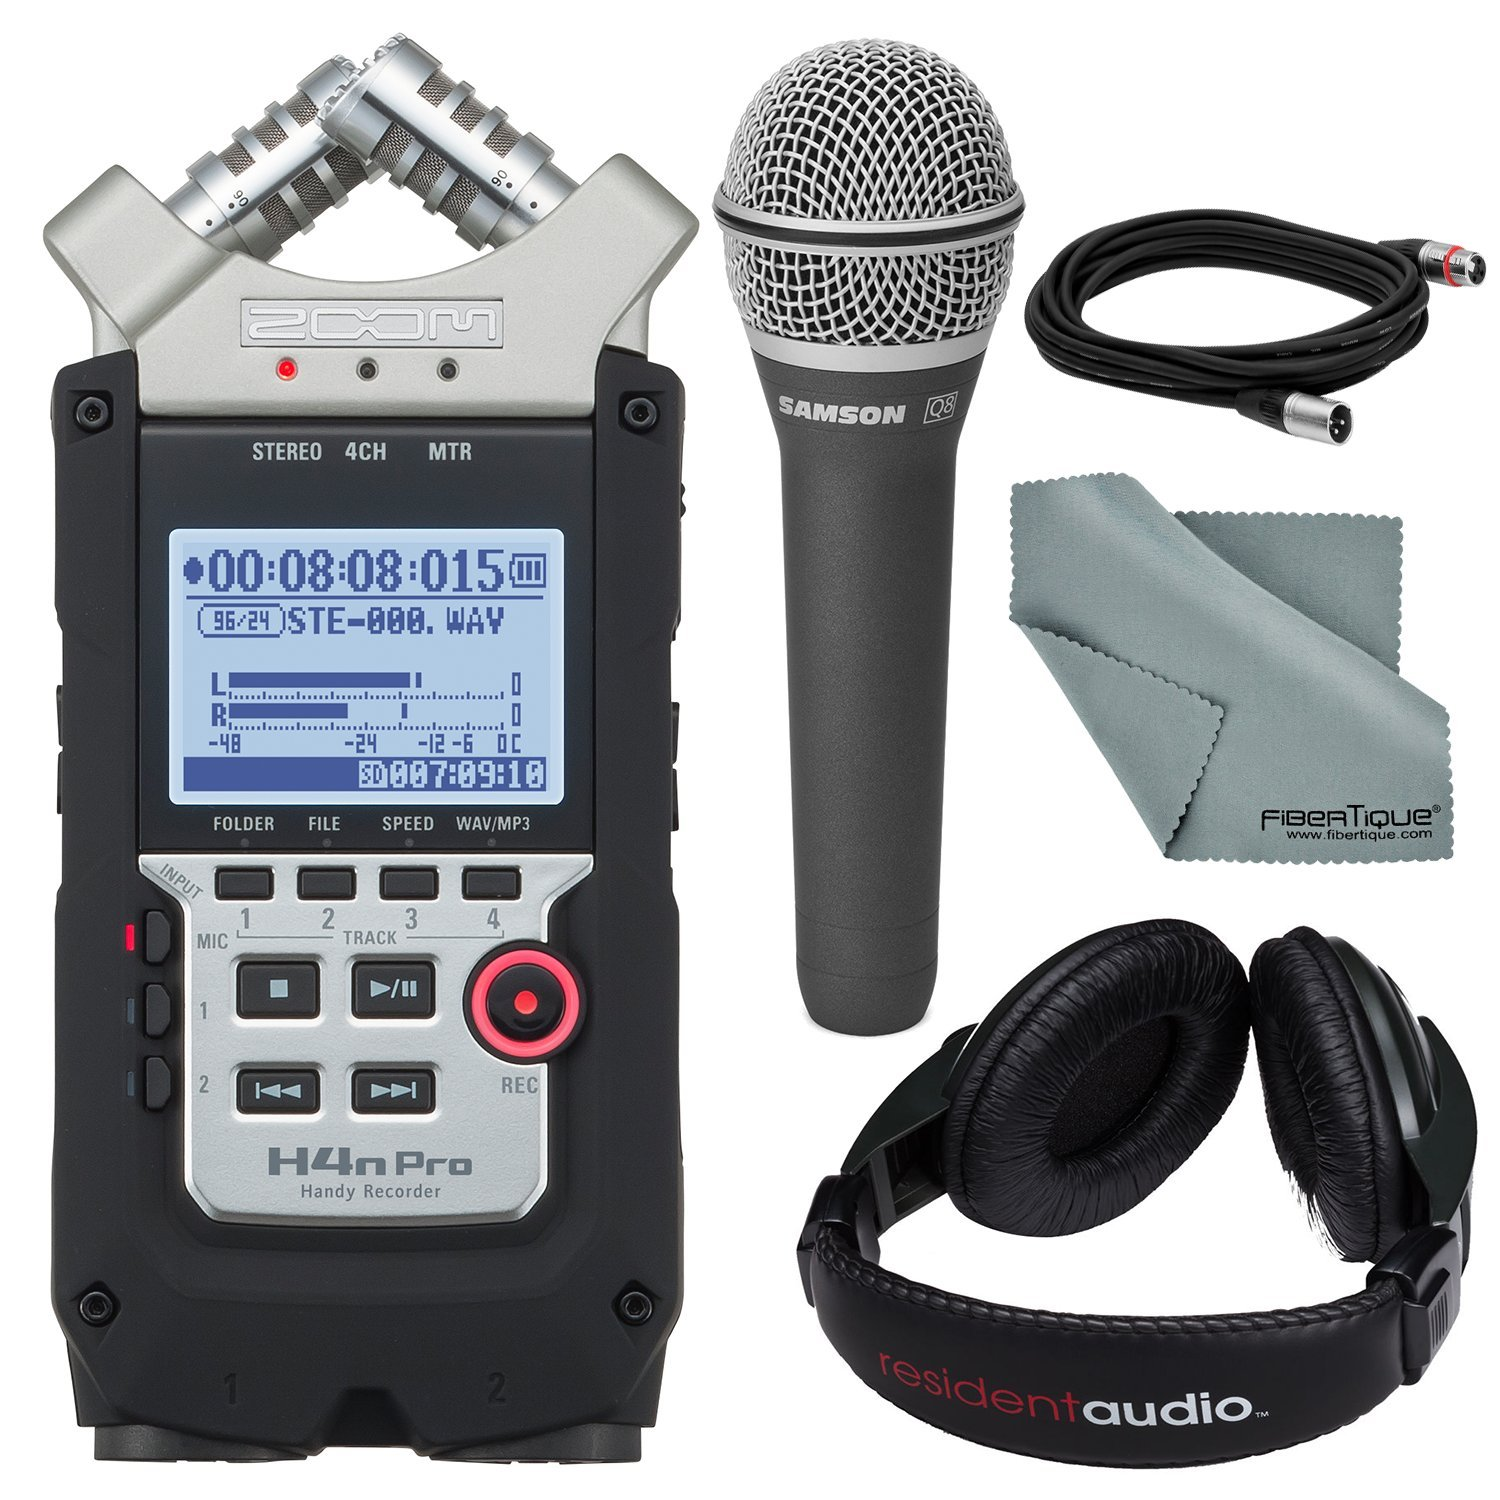 Zoom H4nPRO Four-Track Handy Audio Recorder along with Samson Q8 Professional Dynamic Vocal Microphone with Xlr Cable and Studio Headphones